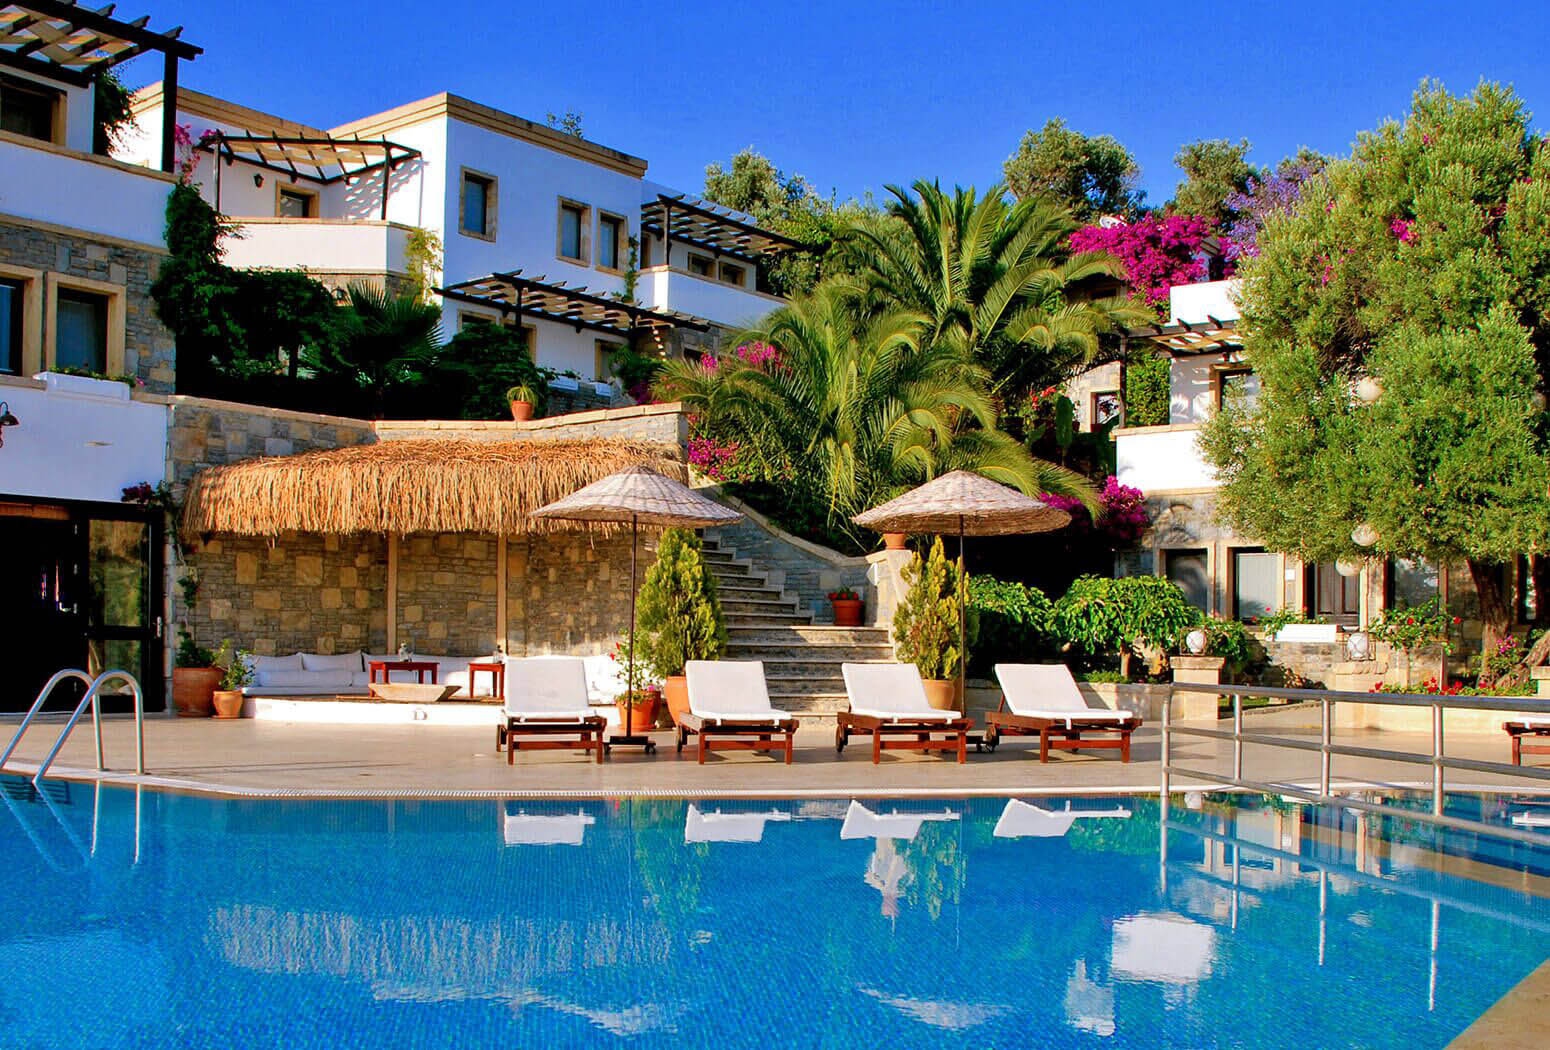 One of the Best Small Boutique Hotels in Bodrum Yalikavak | 4reasons' view from Pool